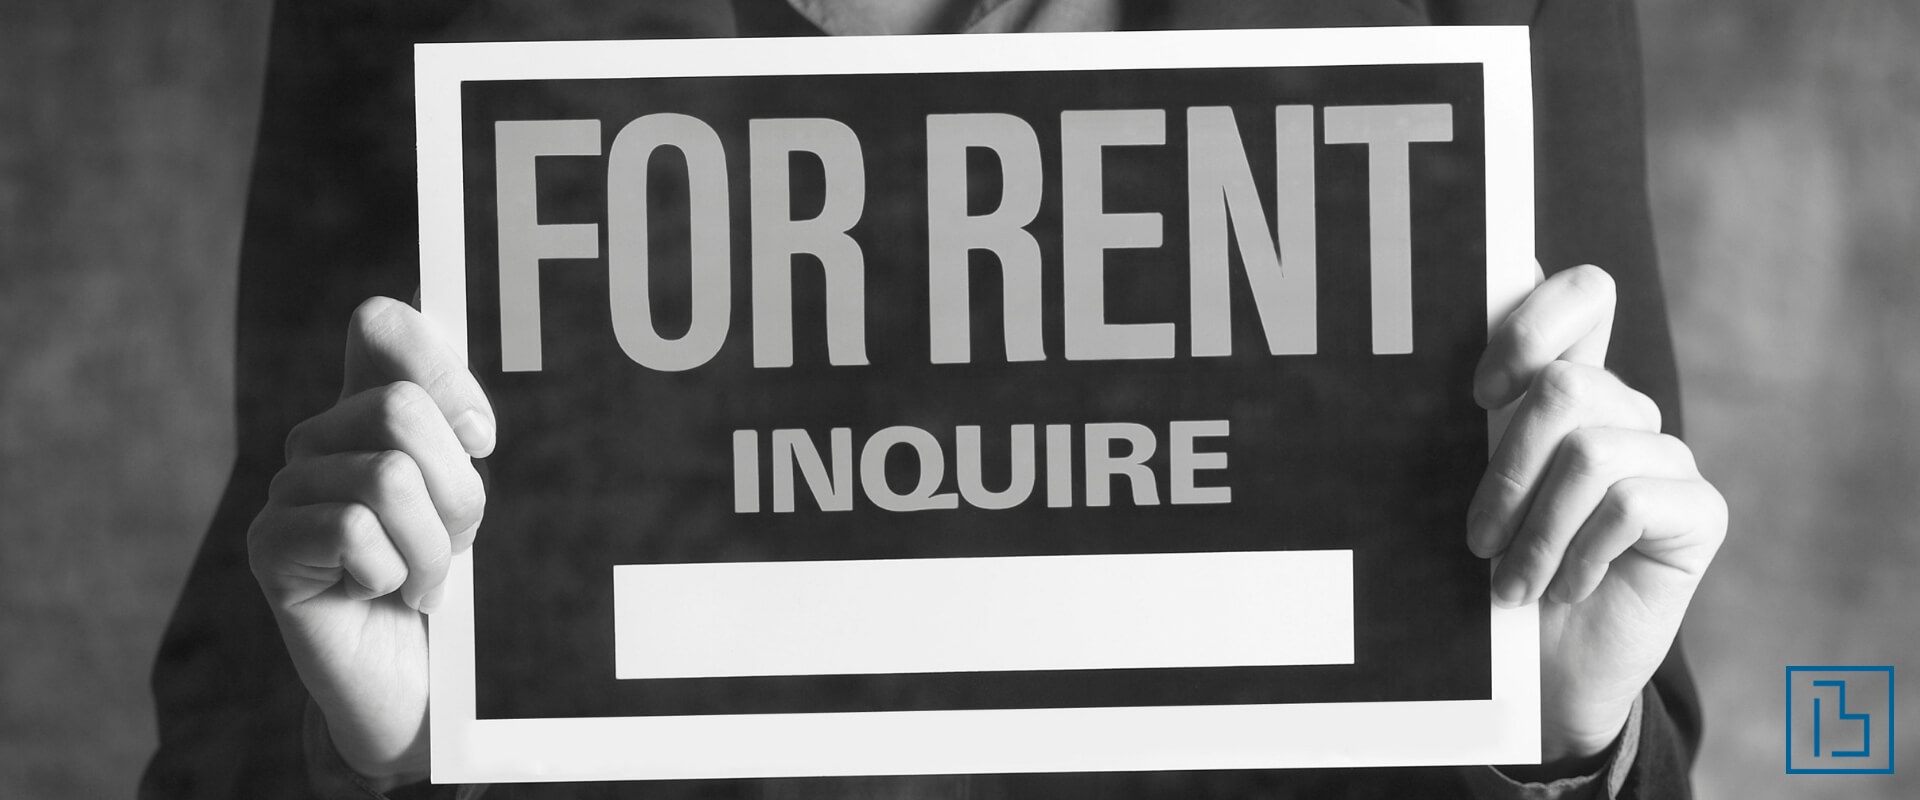 For Rent Sign Seattle - Beachworks LLC